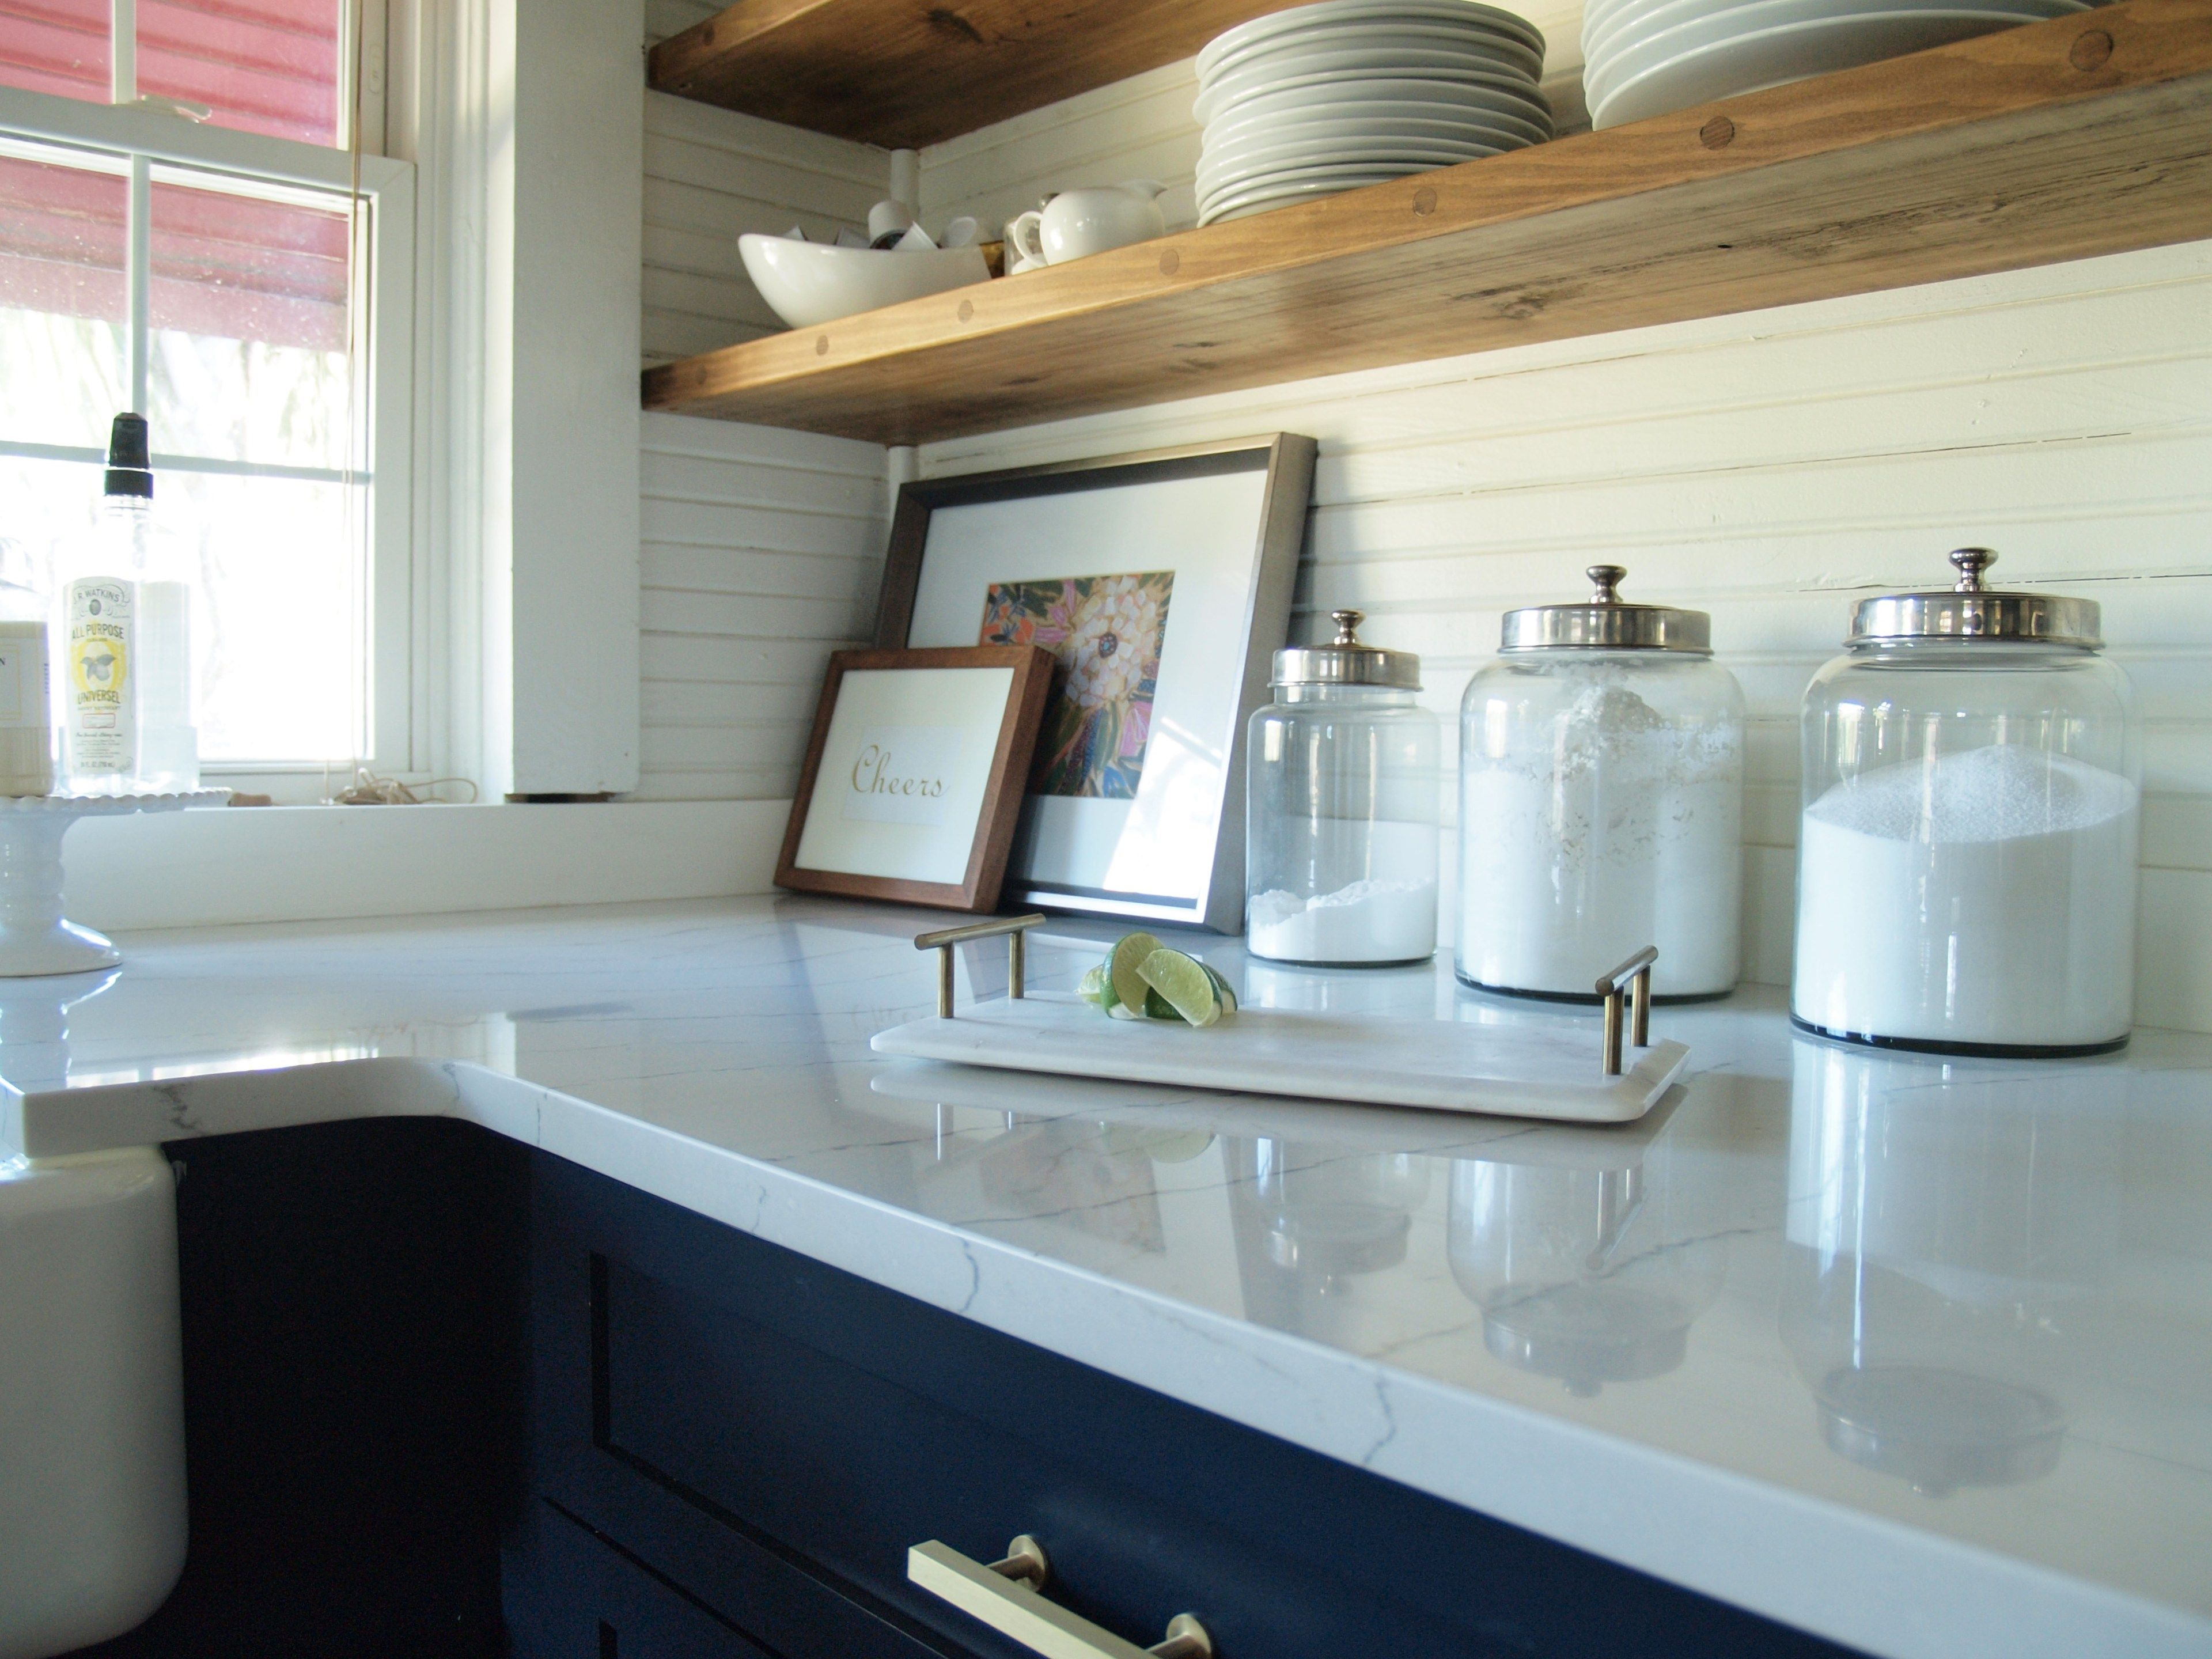 Navy kitchen cabinets with open shelving | Interior Inspiration ...